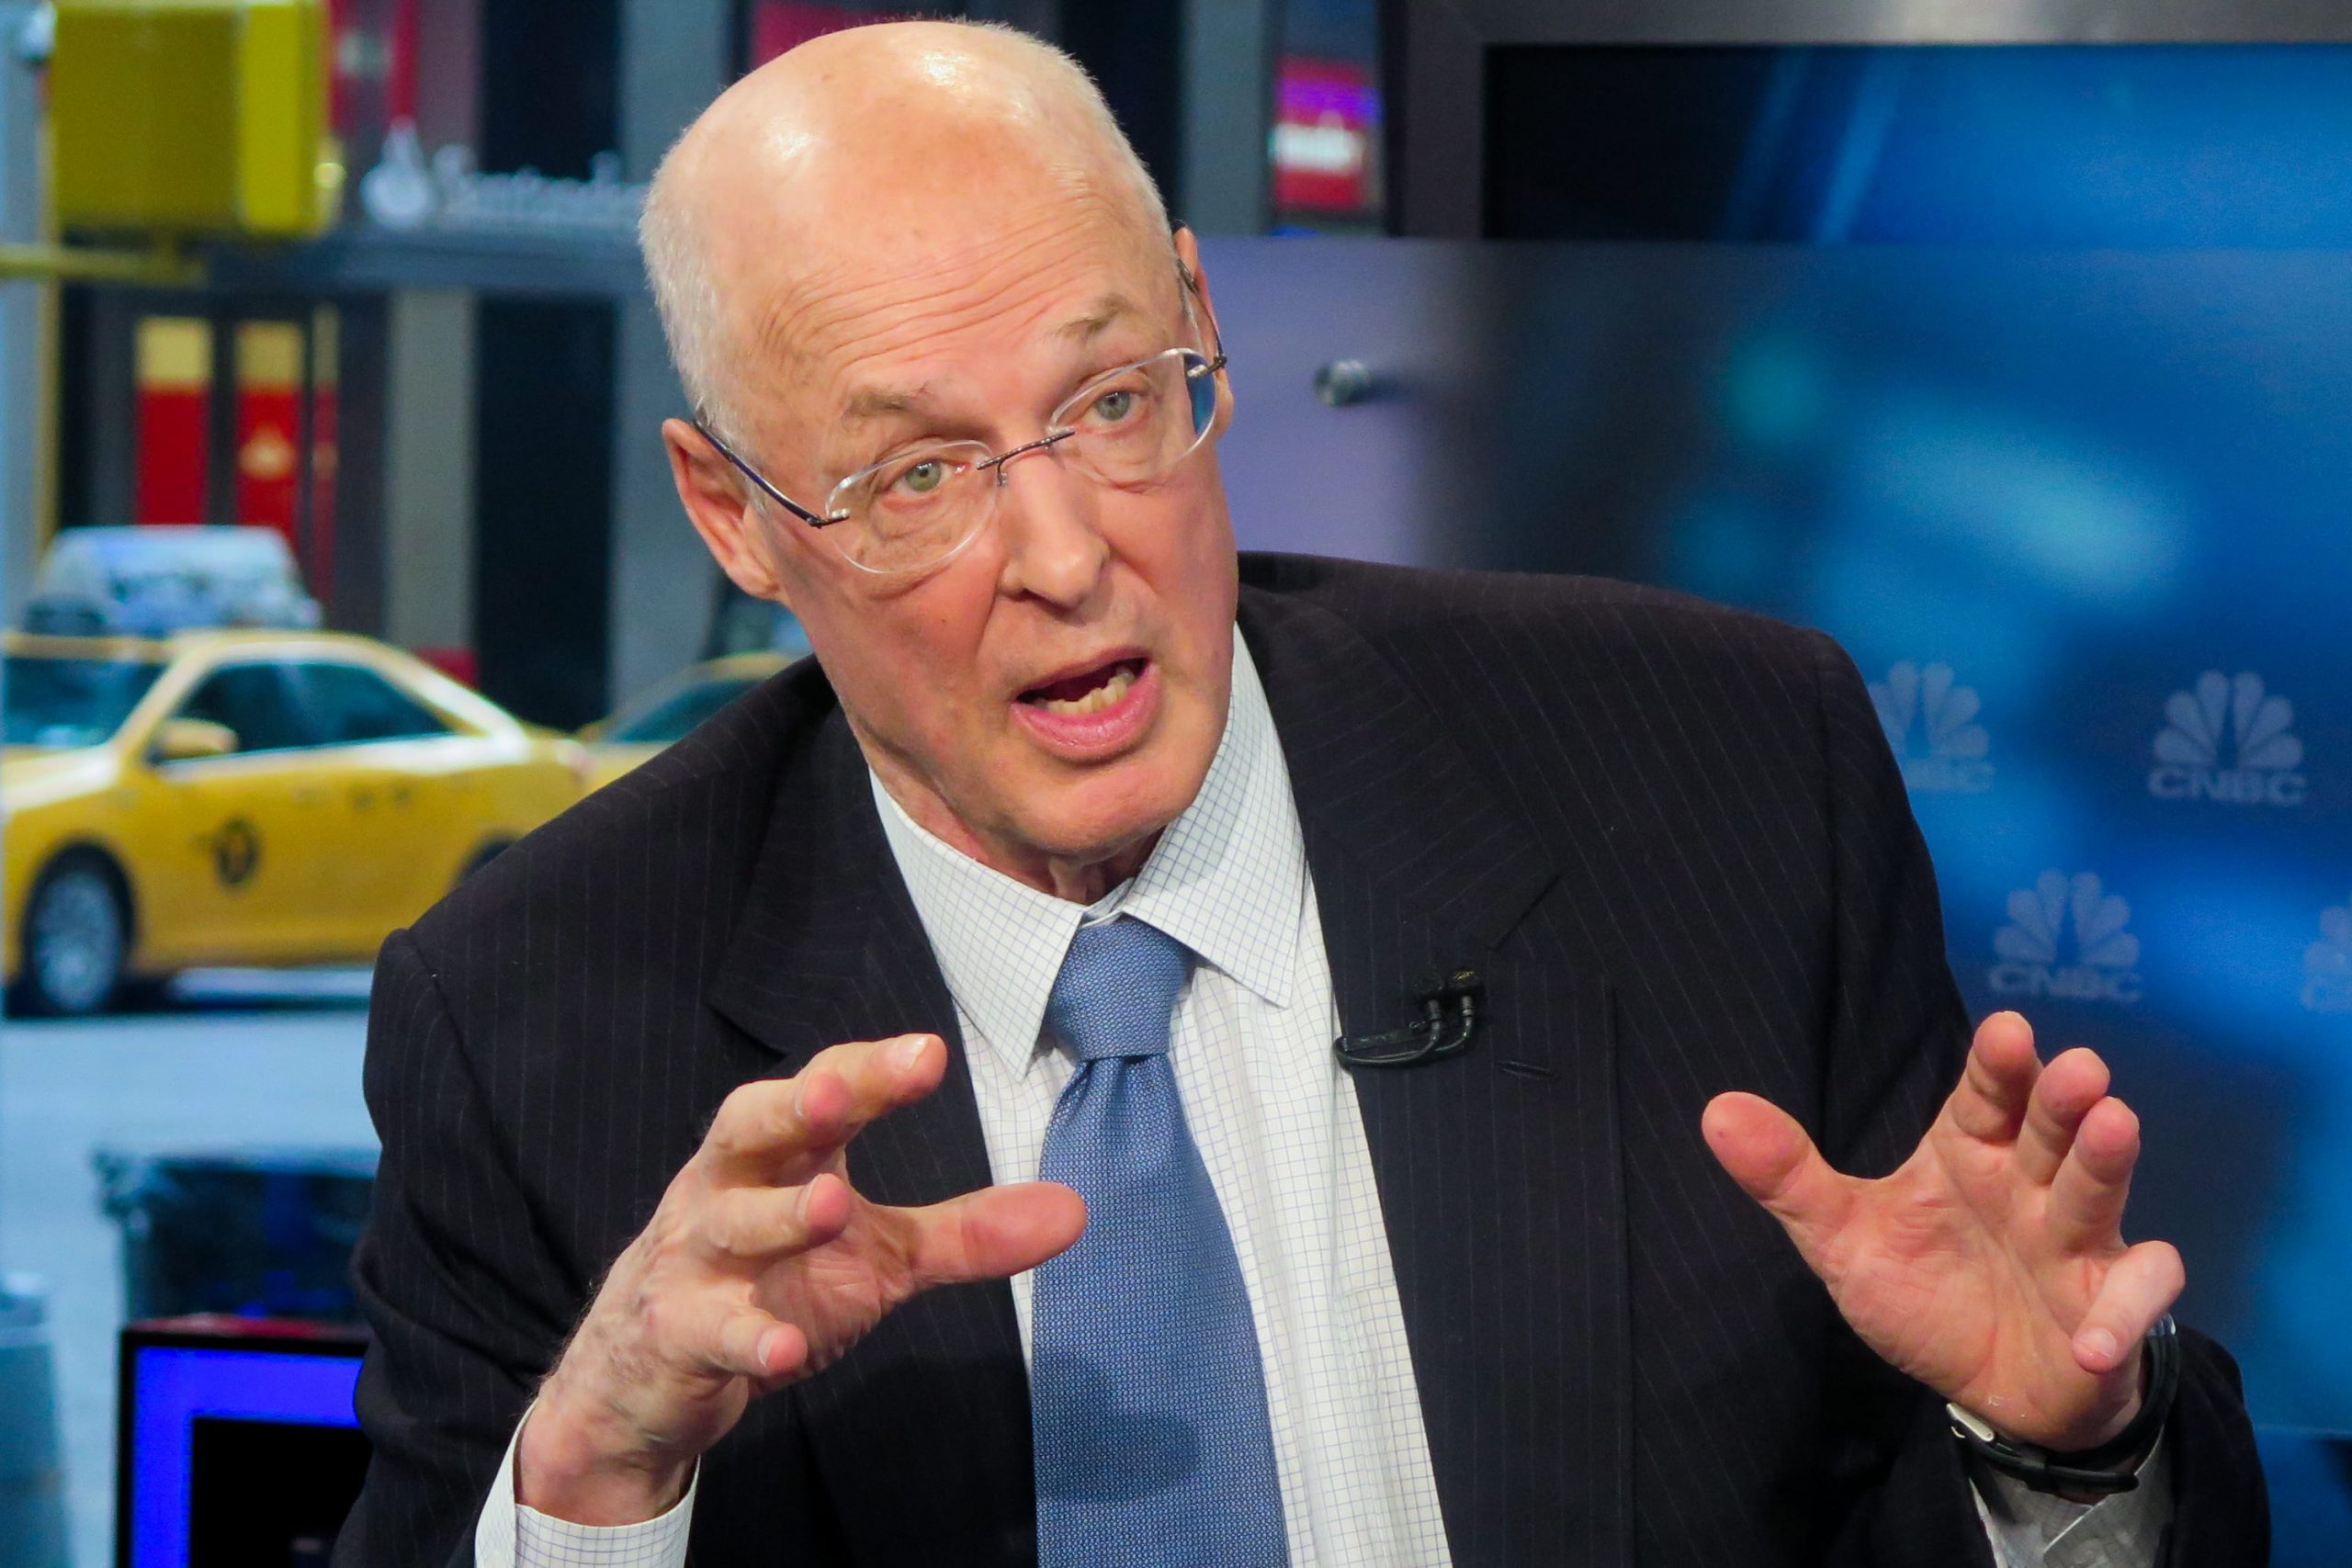 Former Treasury Secretary Hank Paulson gives the lessons he learned from the financial crisis